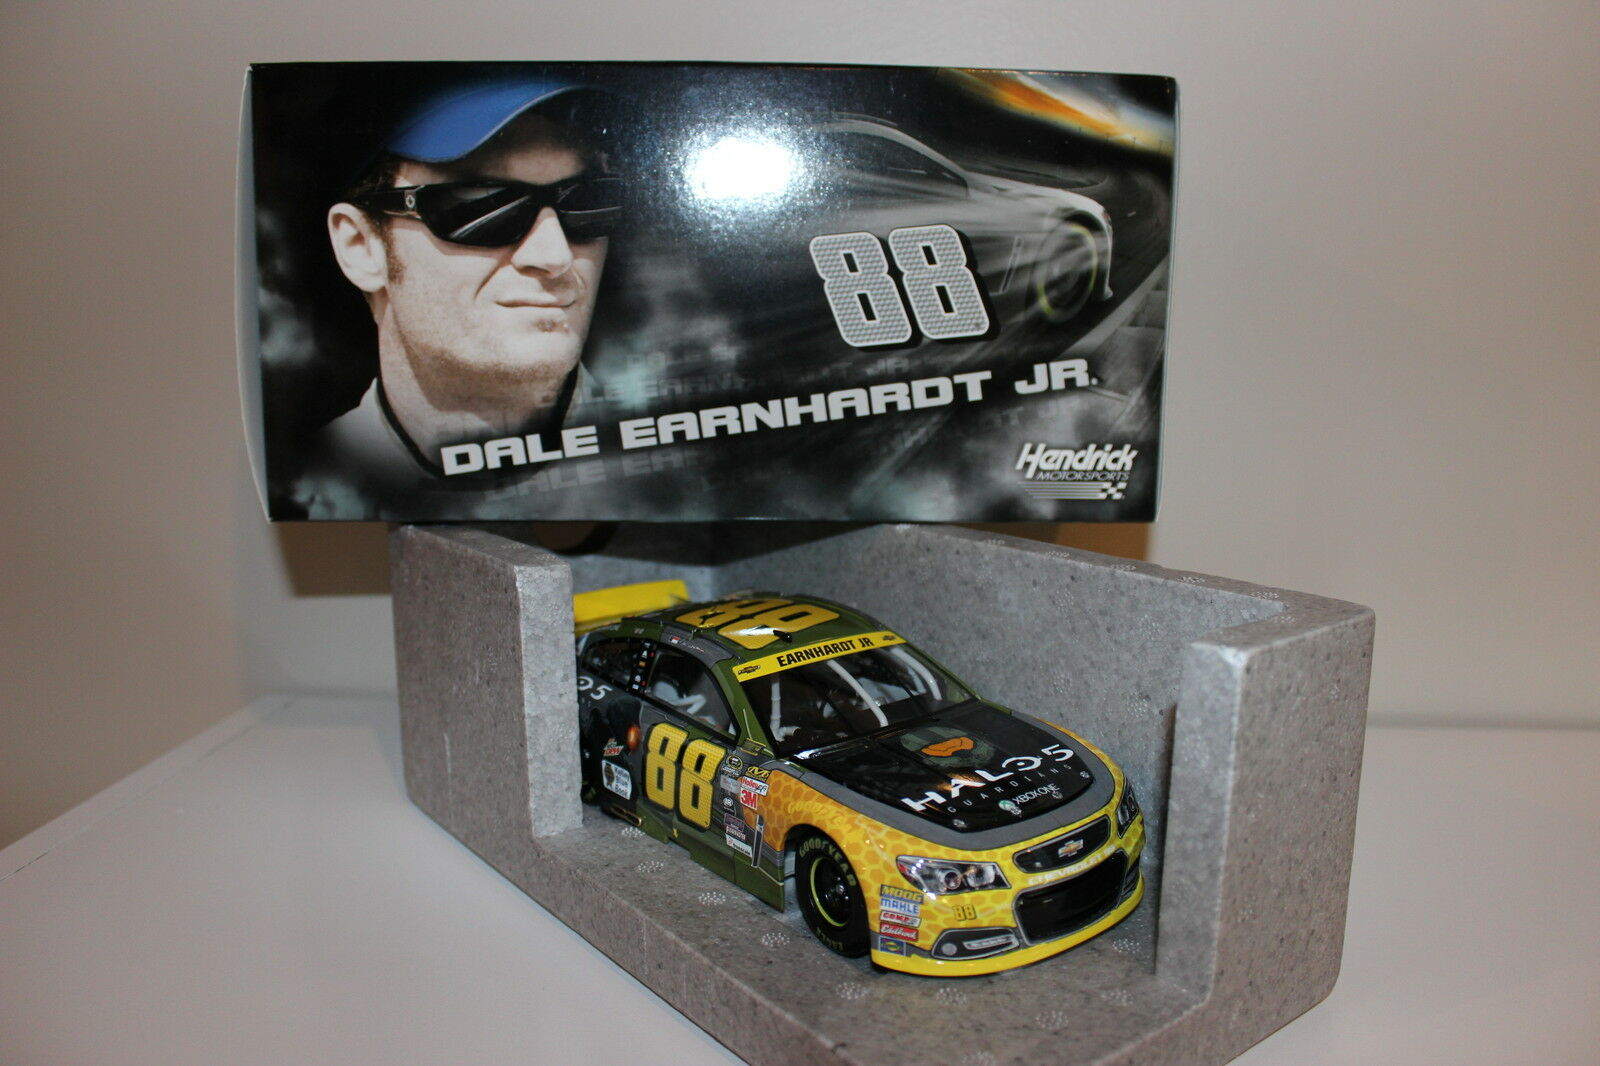 DALE EARNHARDT JR. #88 2015 HALO 5 CHEVY 1/24 MIB 1 OF 2,312 **RARE** CASE OF 12